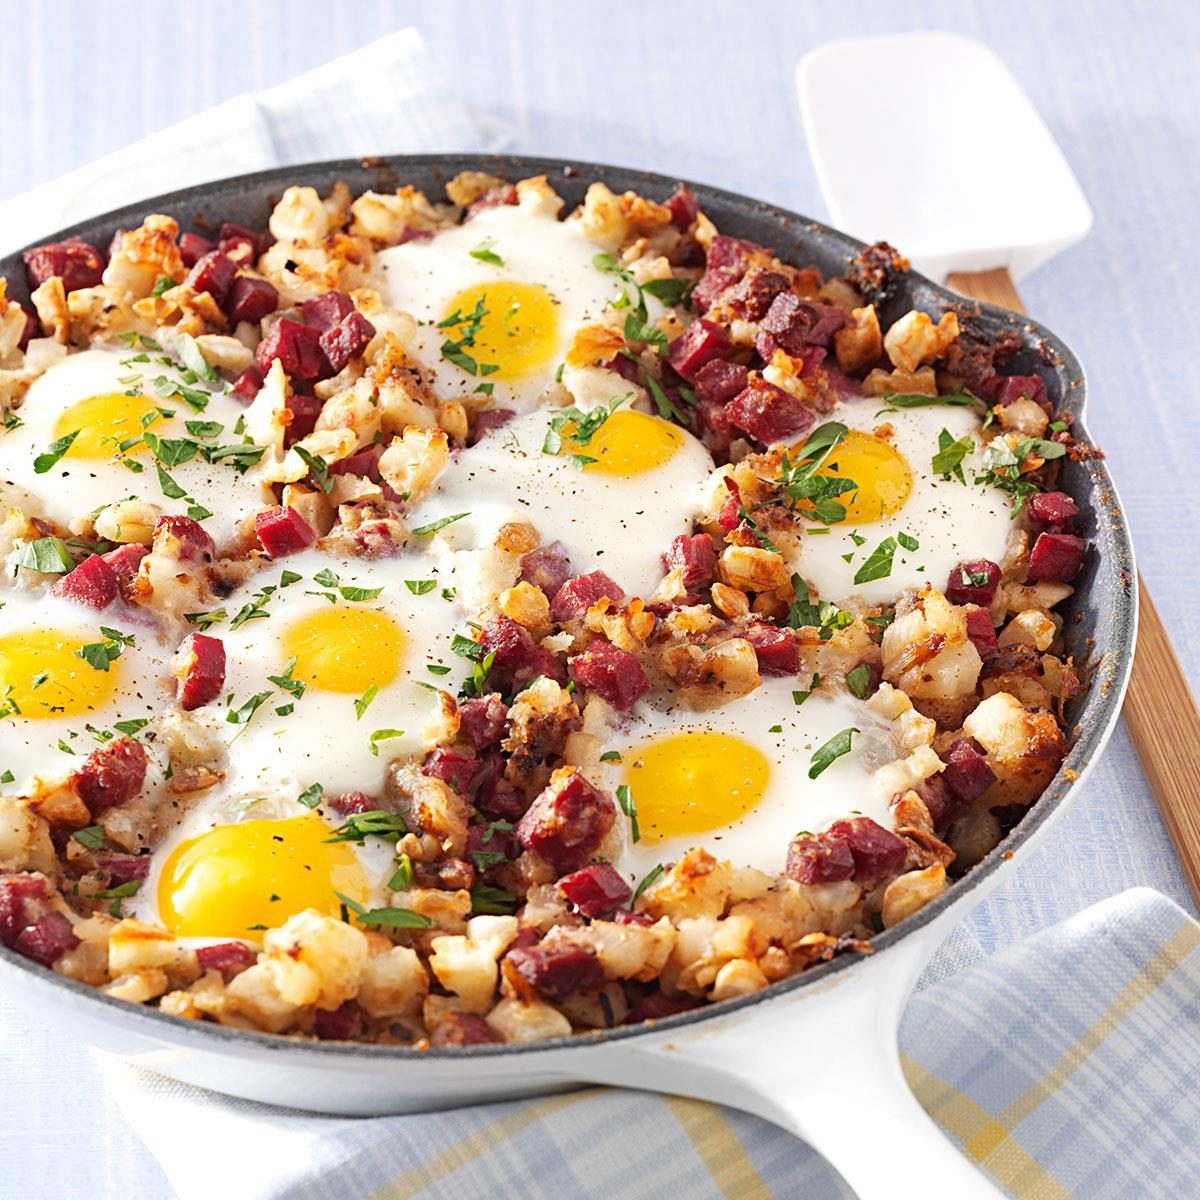 Corned Beef Hash And Eggs Recipe Taste Of Home Watermelon Wallpaper Rainbow Find Free HD for Desktop [freshlhys.tk]